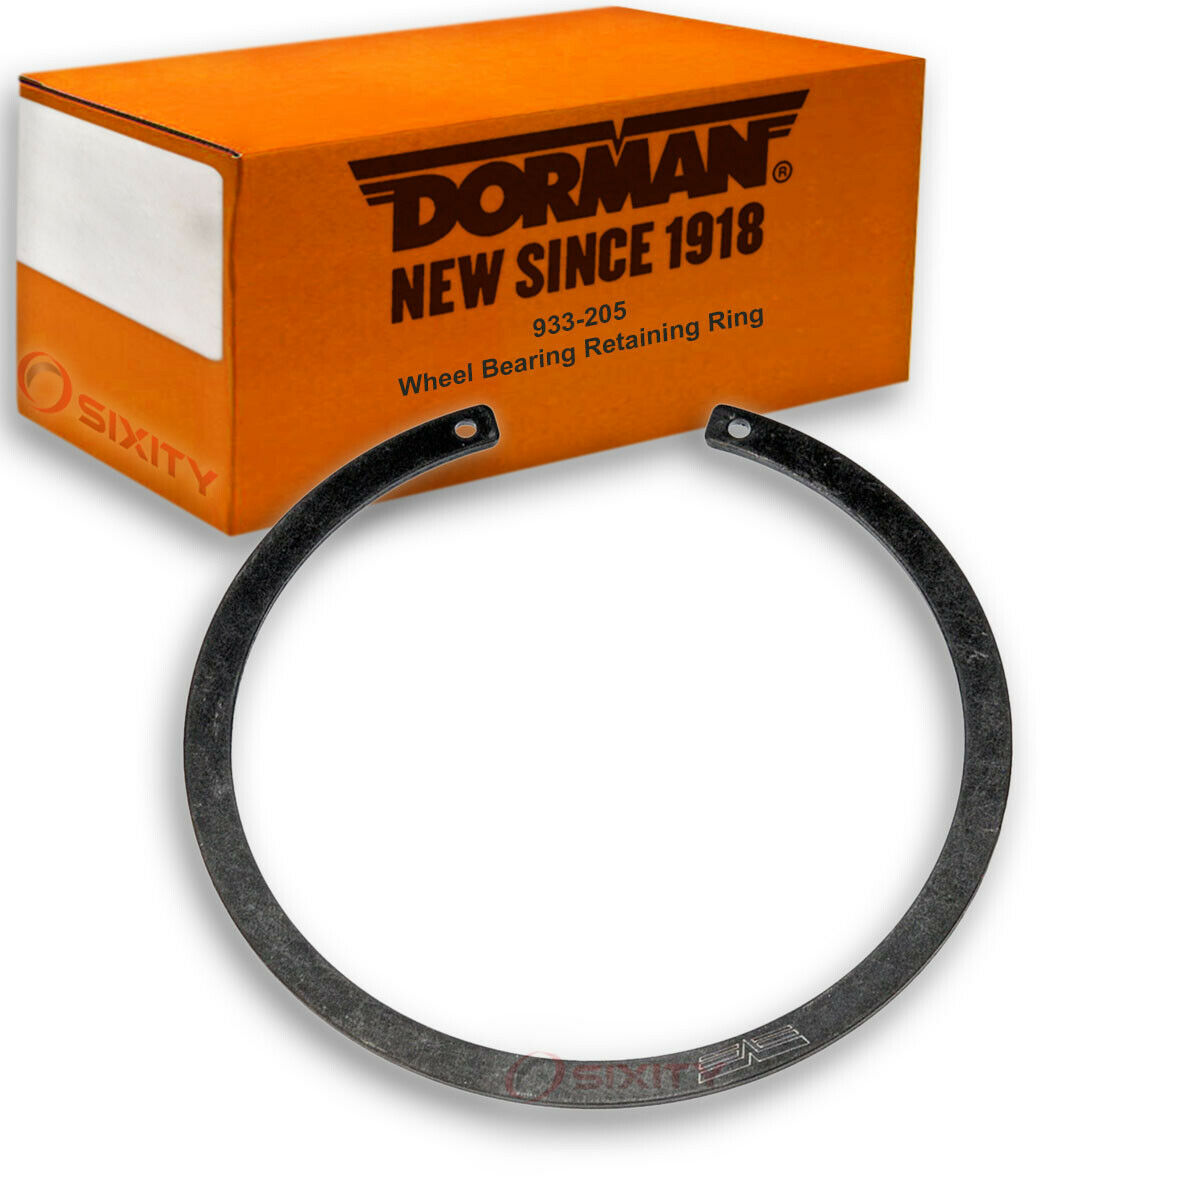 Wheel Bearing Retaining Ring Front Fits Ford OE# YL8Z3B457AA Dorman 933-205